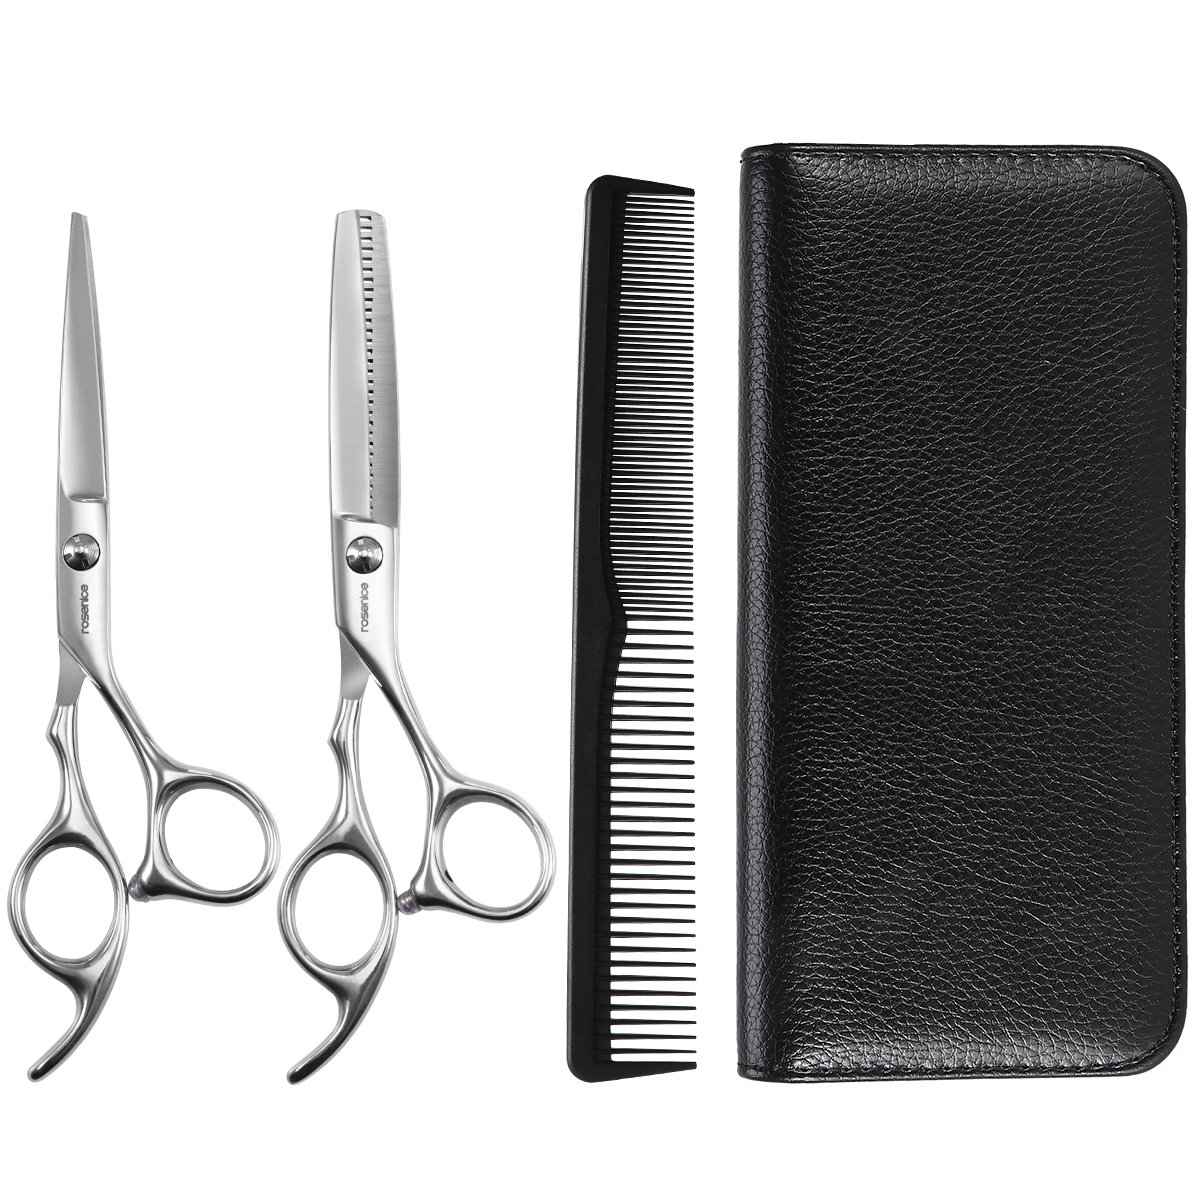 Hair Cutting Shears, ROSENICE Professional  Hairdressing Scissors Haircutting Scissors Barber Shears